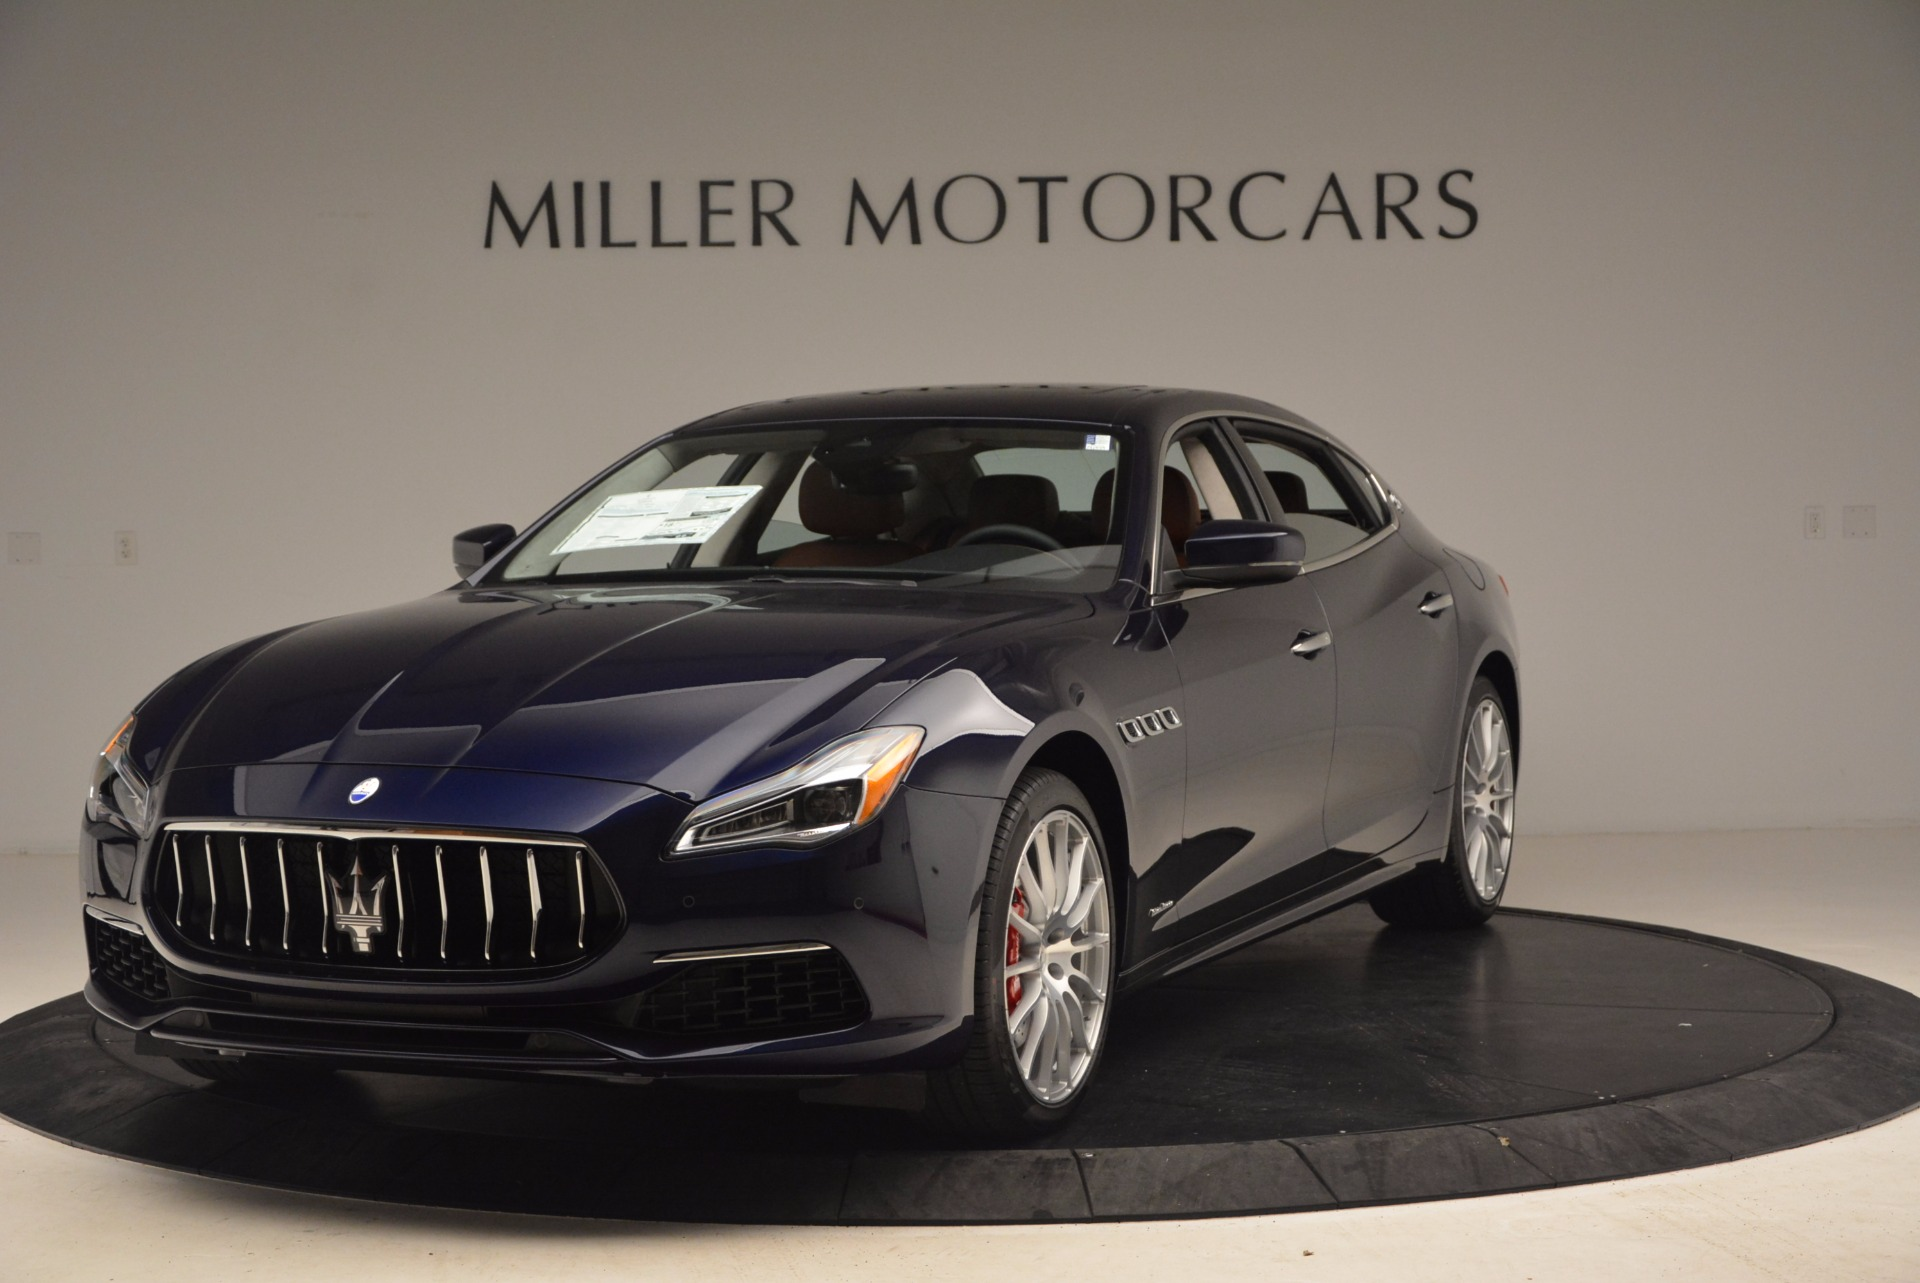 New 2018 Maserati Quattroporte S Q4 GranLusso for sale Sold at Bugatti of Greenwich in Greenwich CT 06830 1